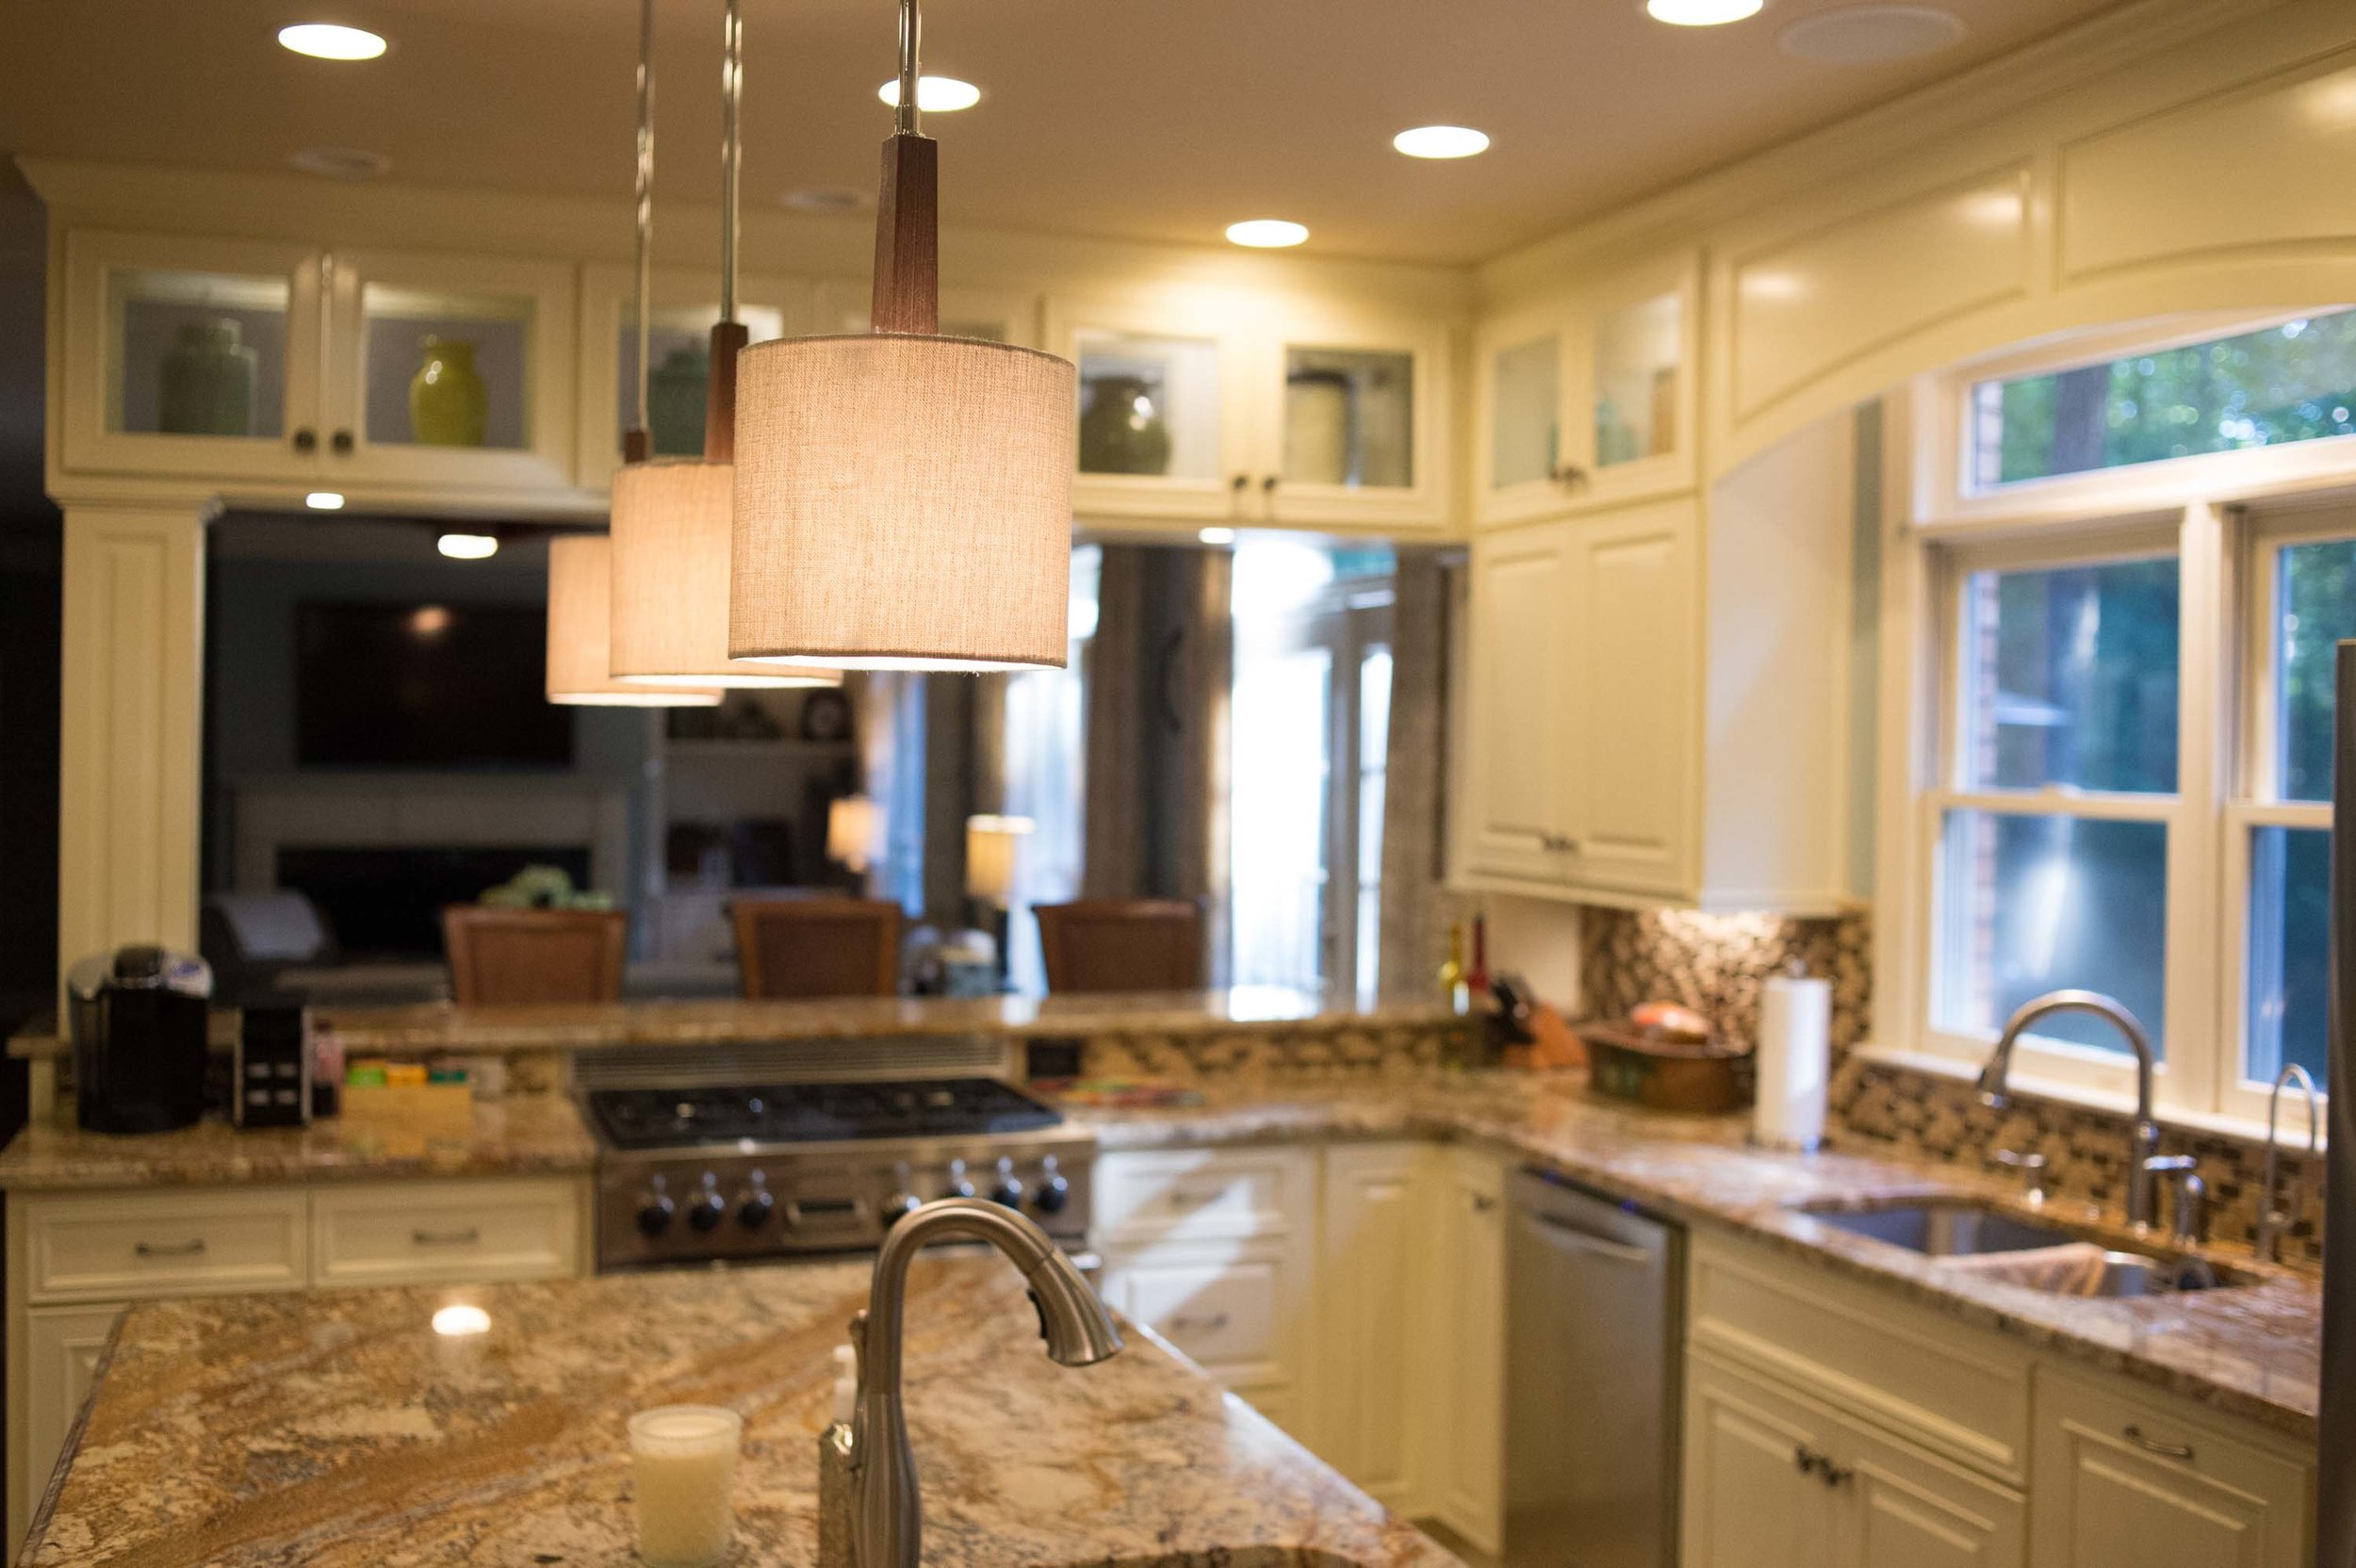 Kitchen with ceiling lamp and ceramic countertops